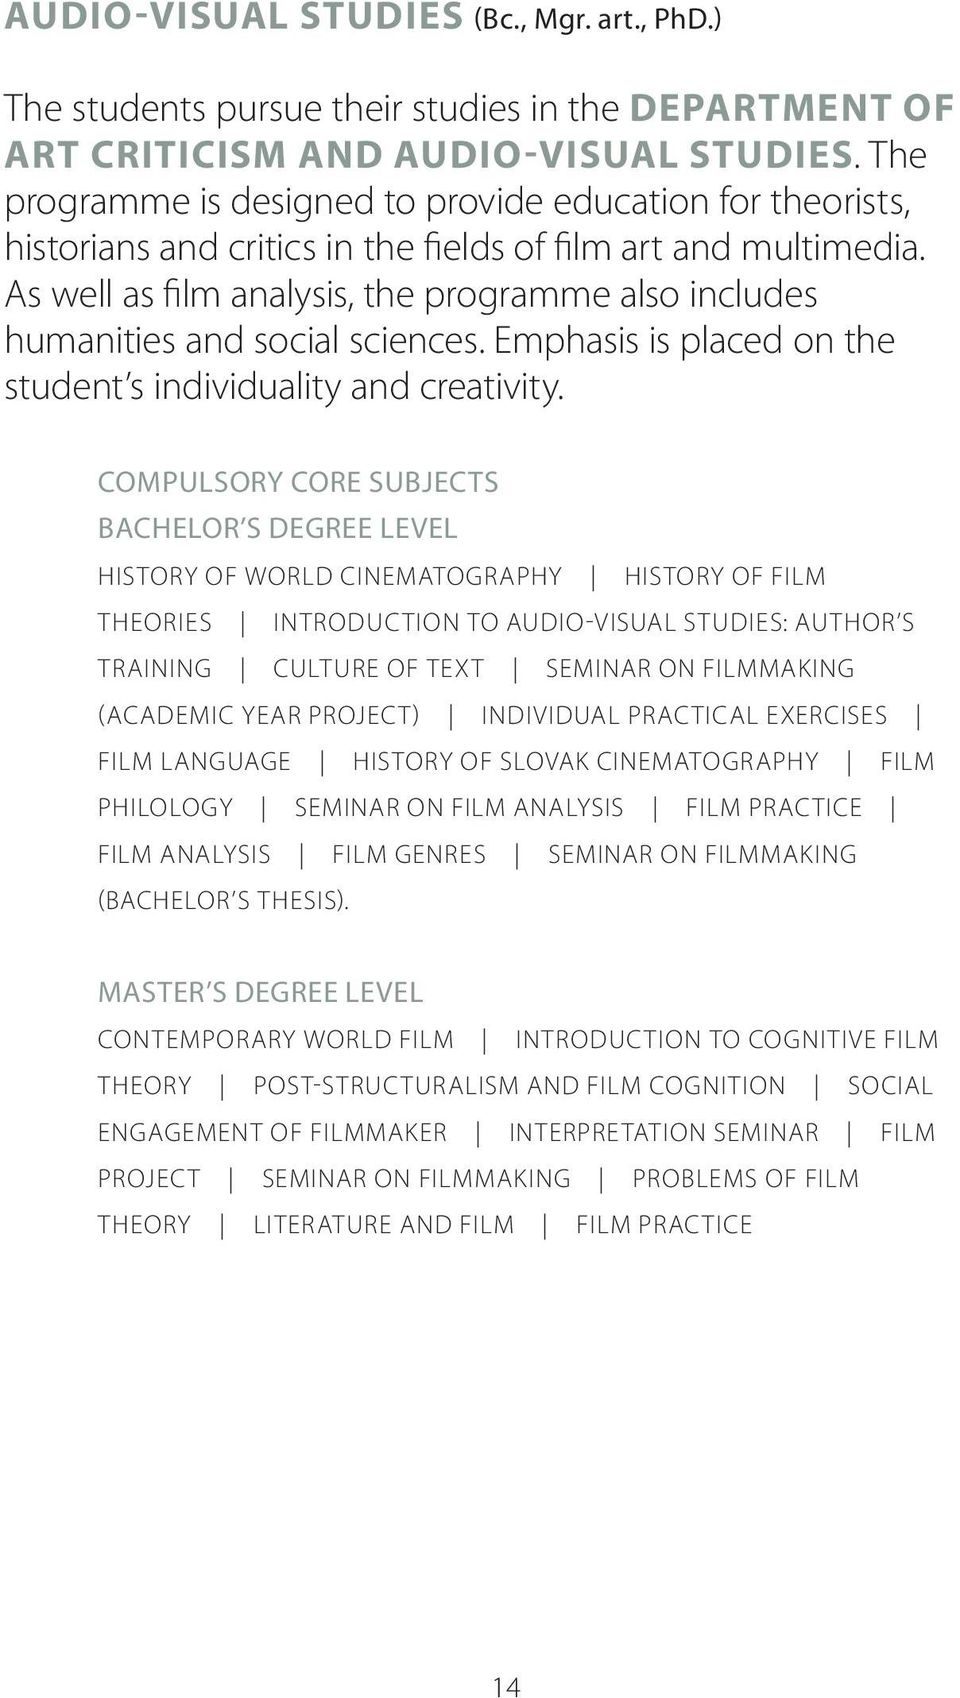 As well as film analysis, the programme also includes humanities and social sciences. Emphasis is placed on the student s individuality and creativity.